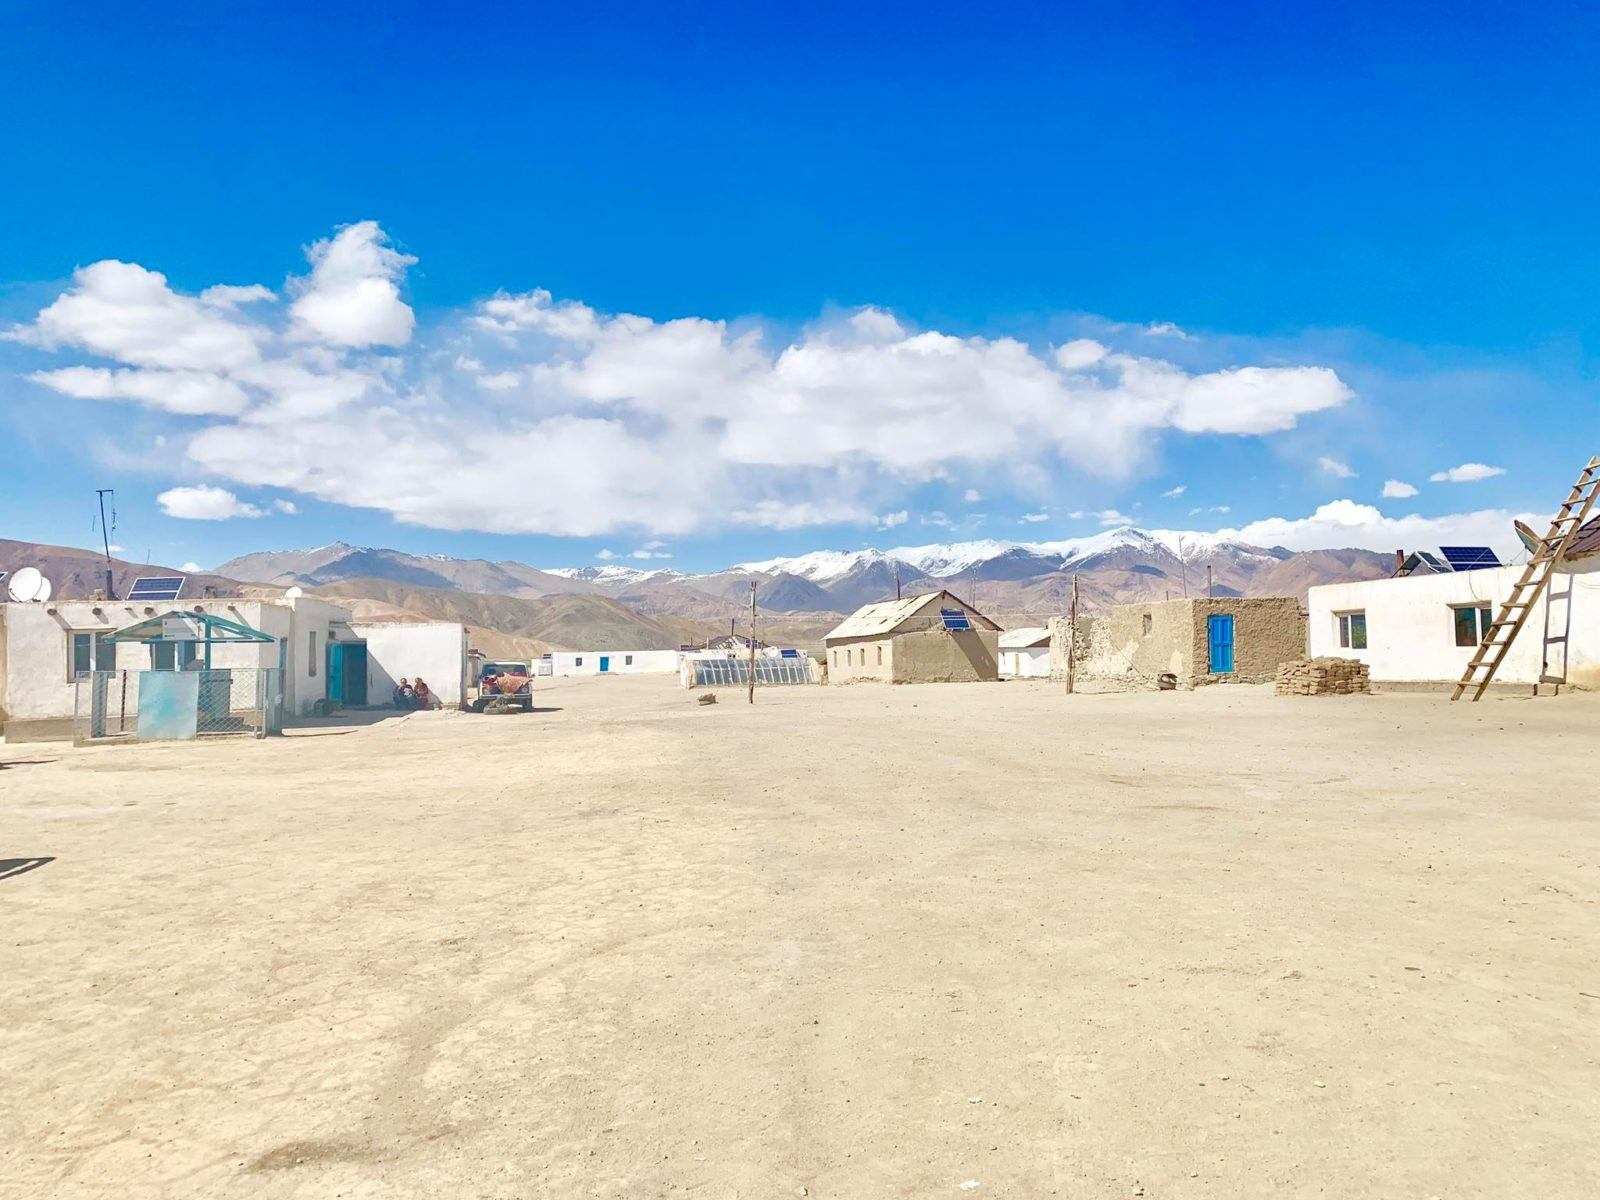 13 Things You Should Not Miss When You Travel the Pamir Highway in Tajikistan4